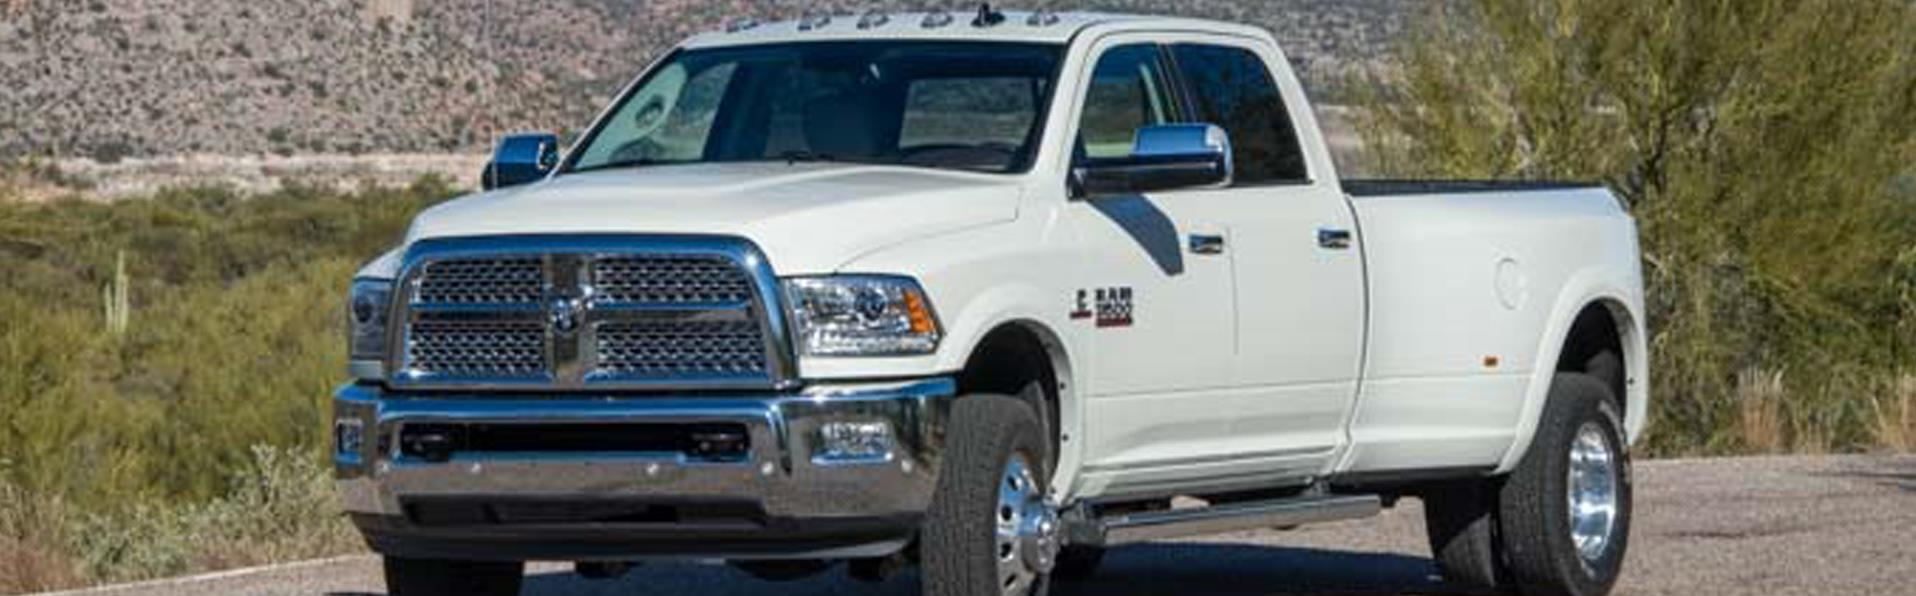 Used Trucks For Sale In Ky >> Used Cars Richmond Ky Used Cars Trucks Ky Central Ky